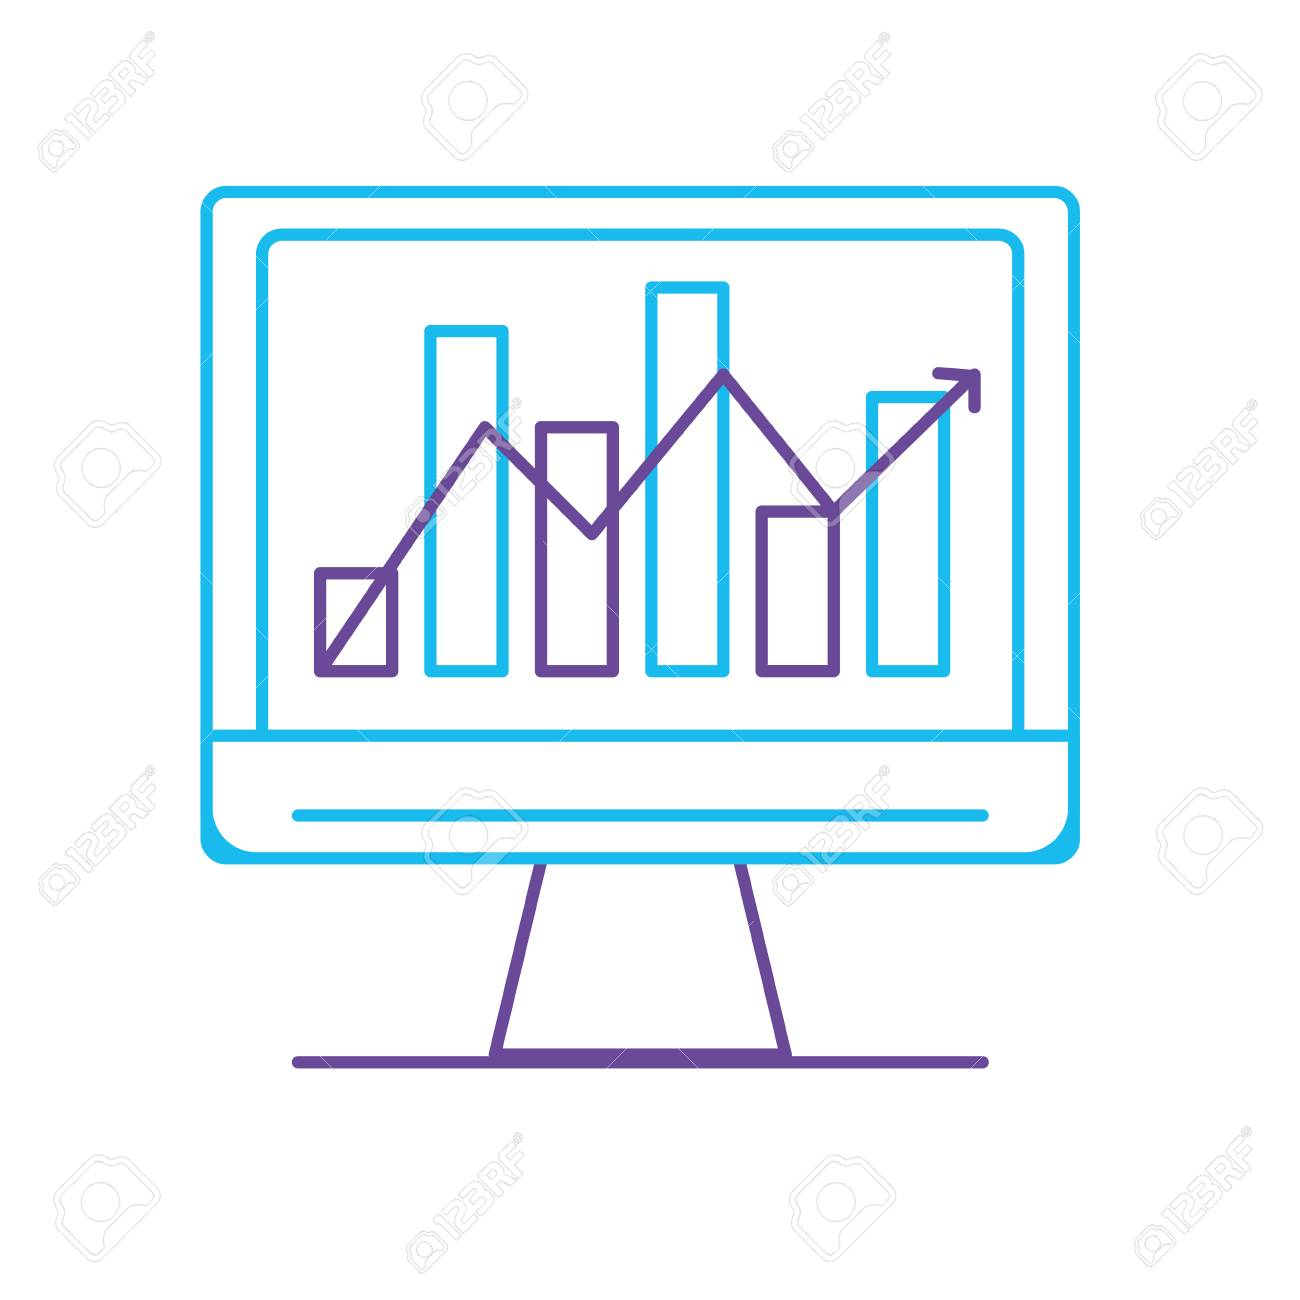 hight resolution of line computer technology with statistics bar diagram vector illustration stock vector 88399752